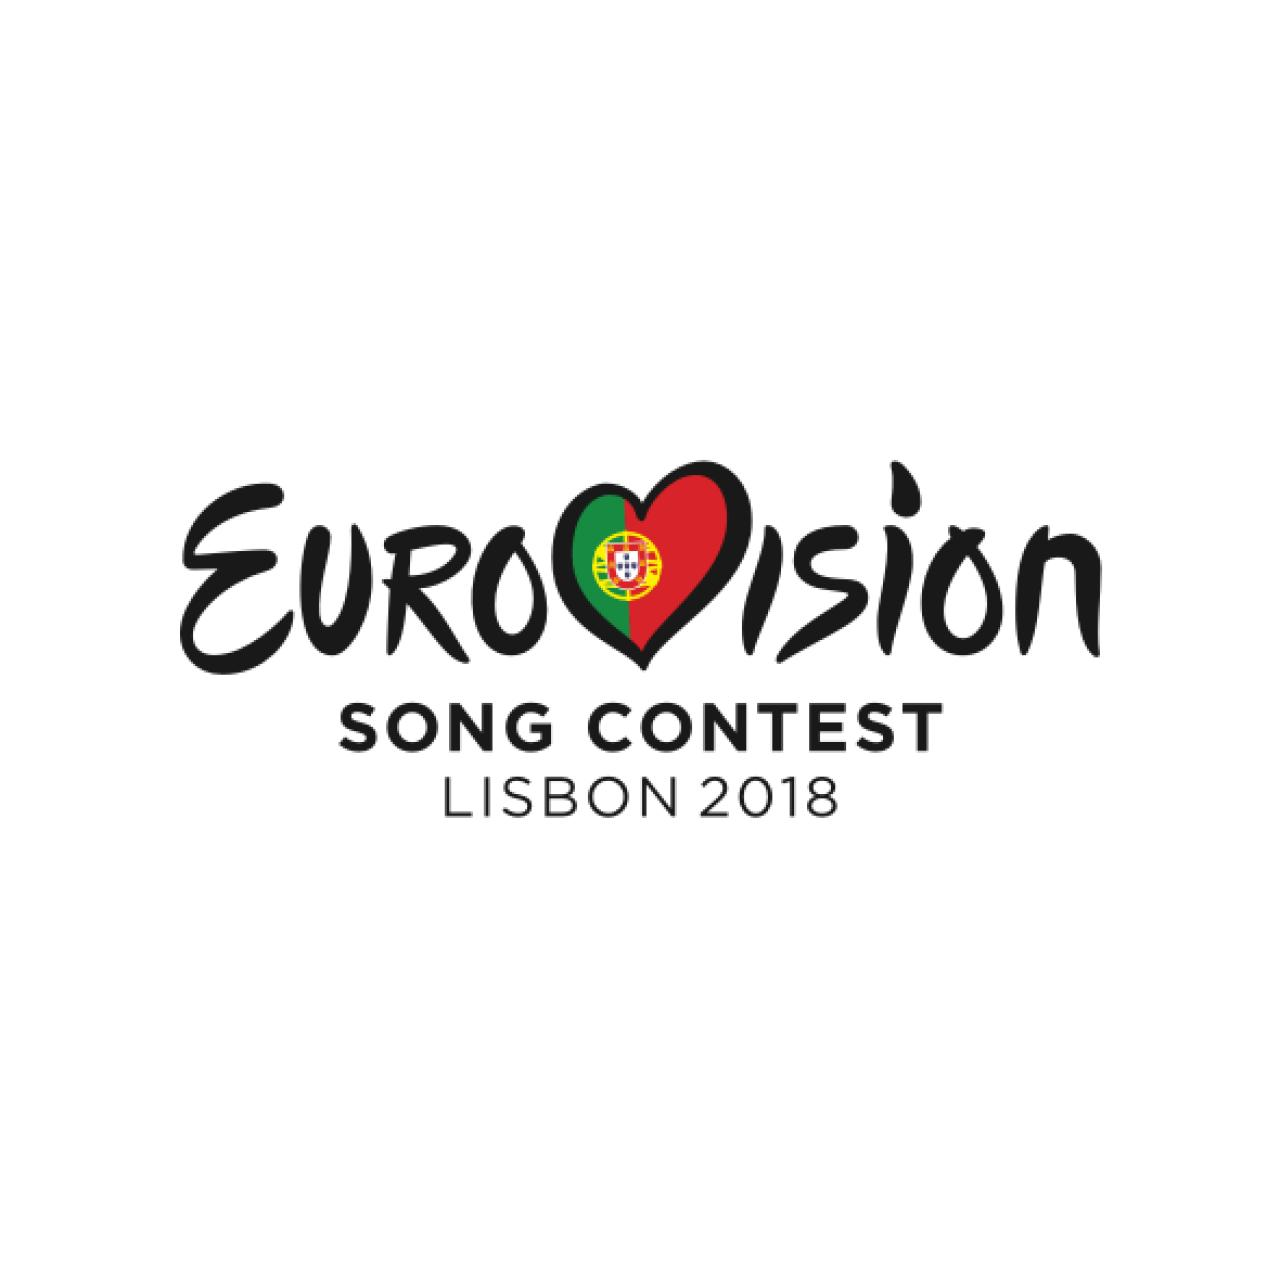 Eurovision Songcontest Logo